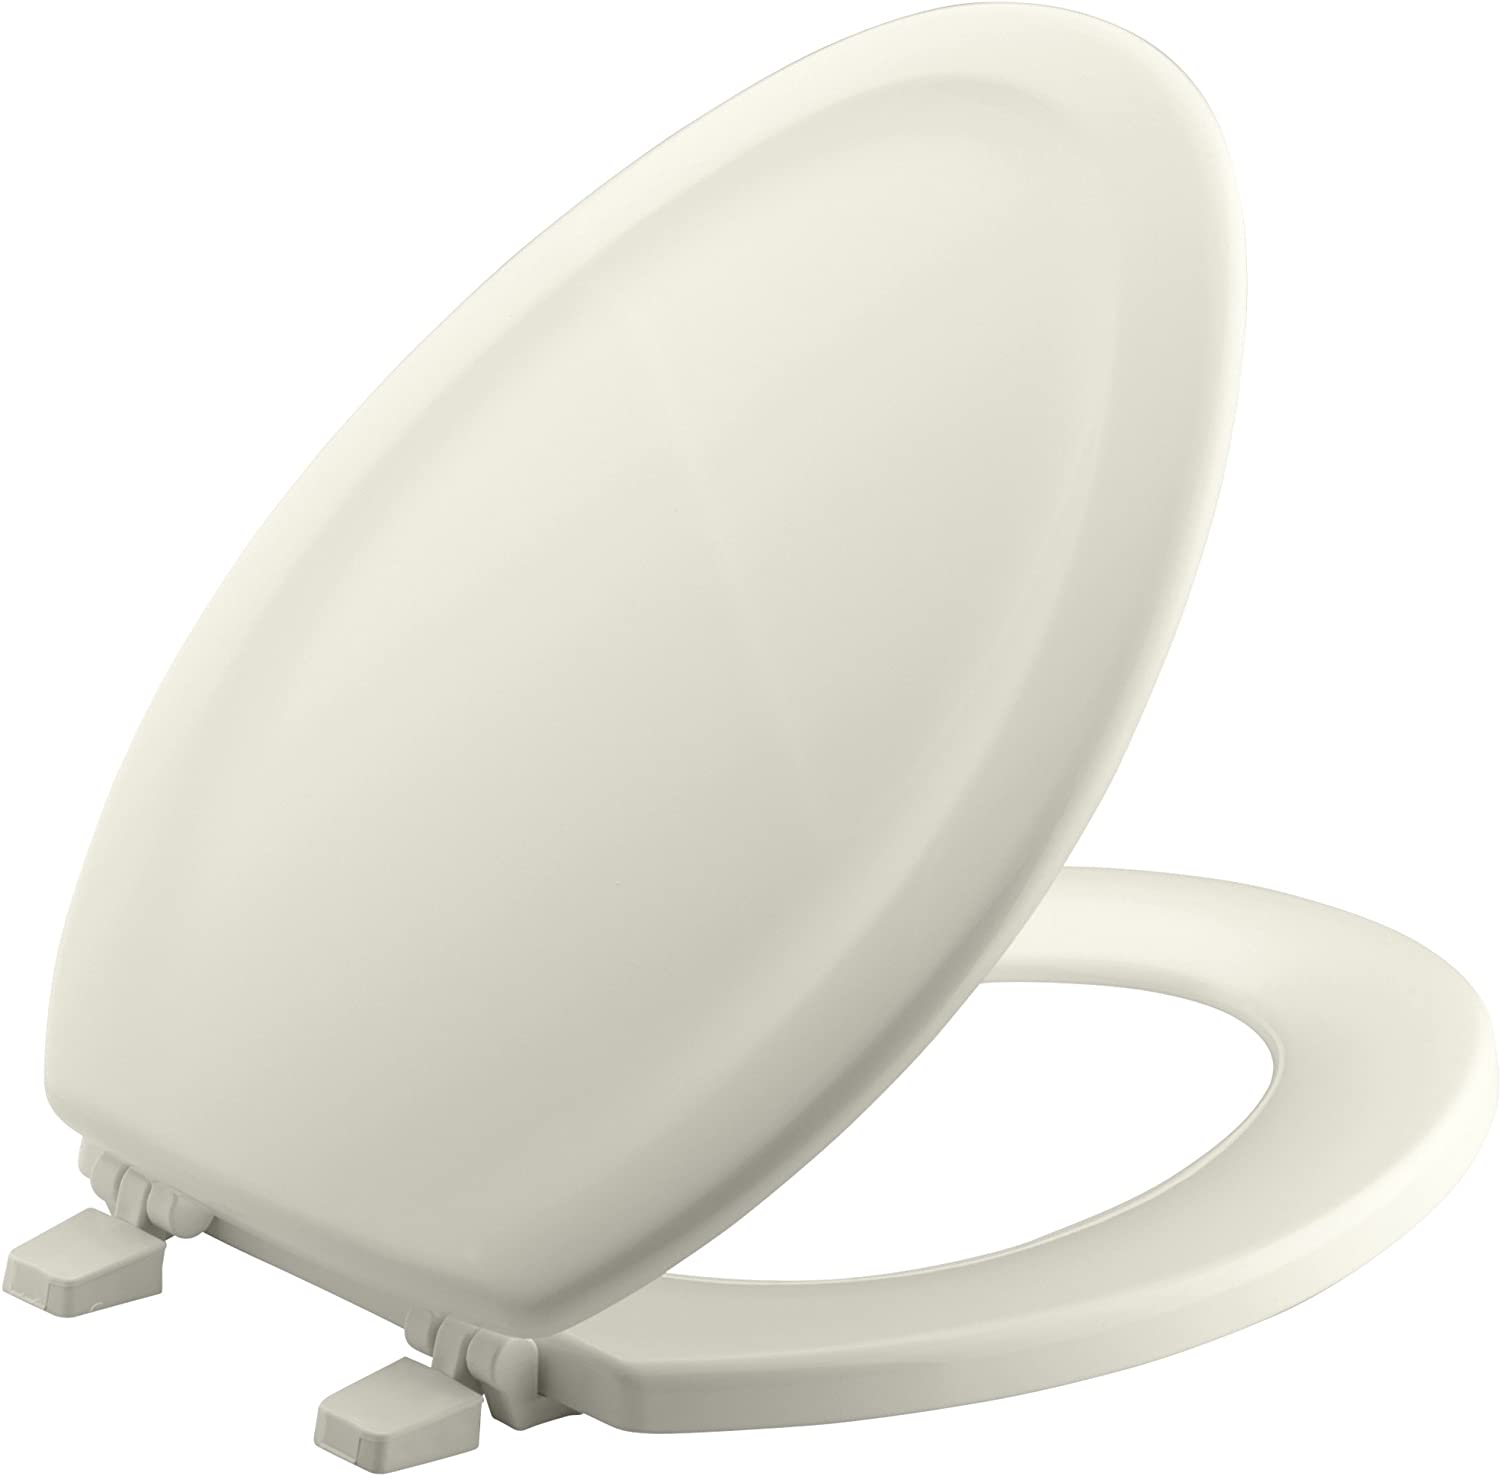 KOHLER K-4814-96 Stonewood with Quick-Release Hinges Elongated Toilet Seat, Biscuit